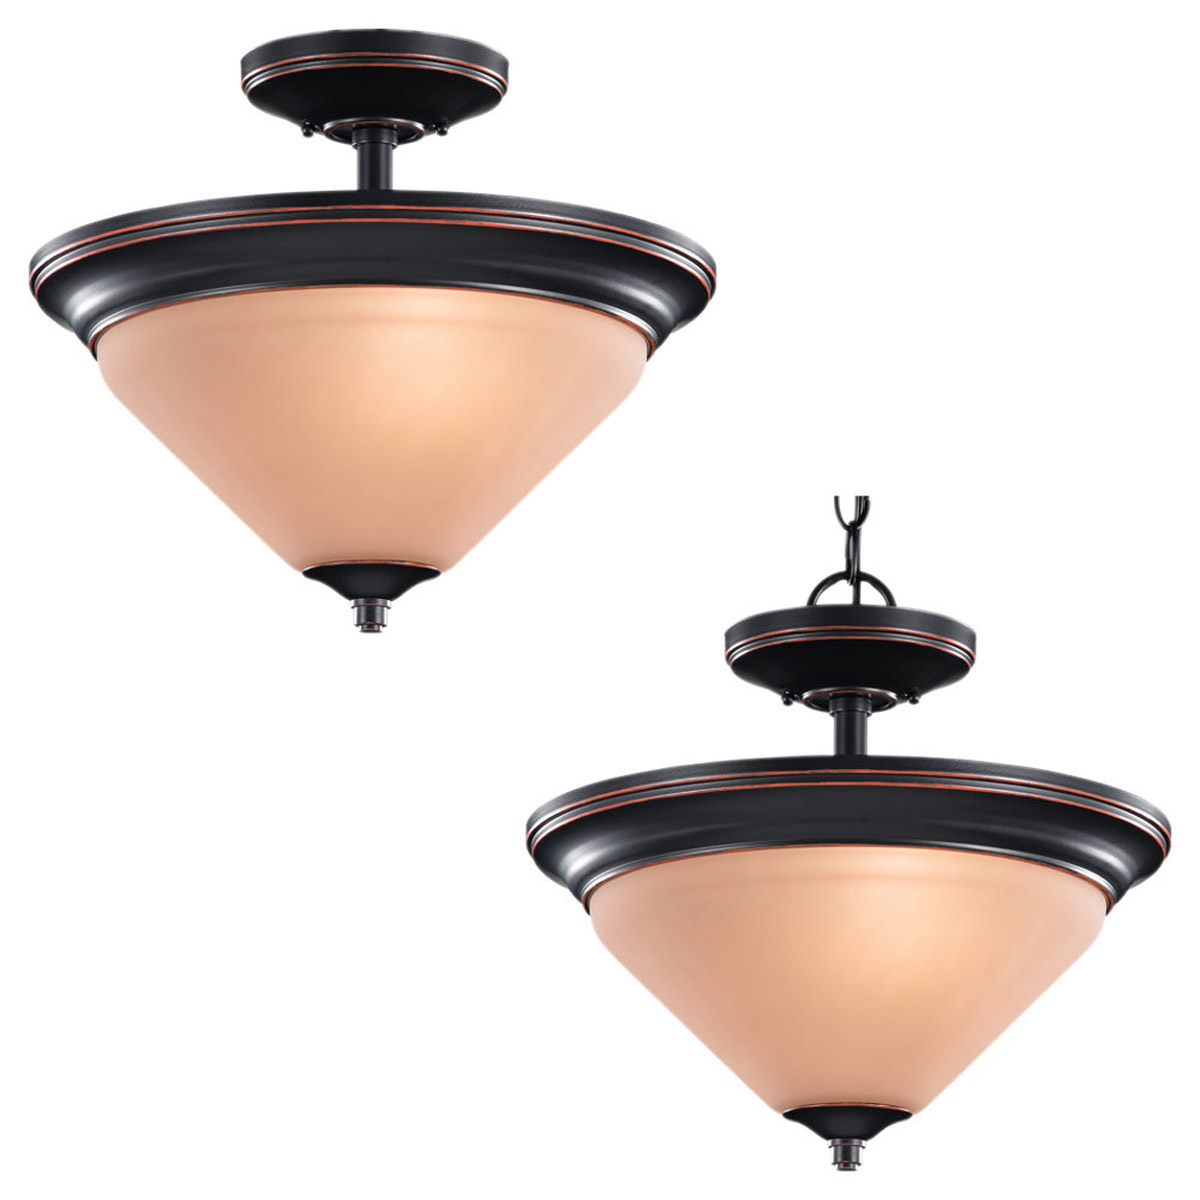 Sea Gull Lighting Belair 2 Light Semi-Flush / Pendant in Vintage Brown 77790-862 photo